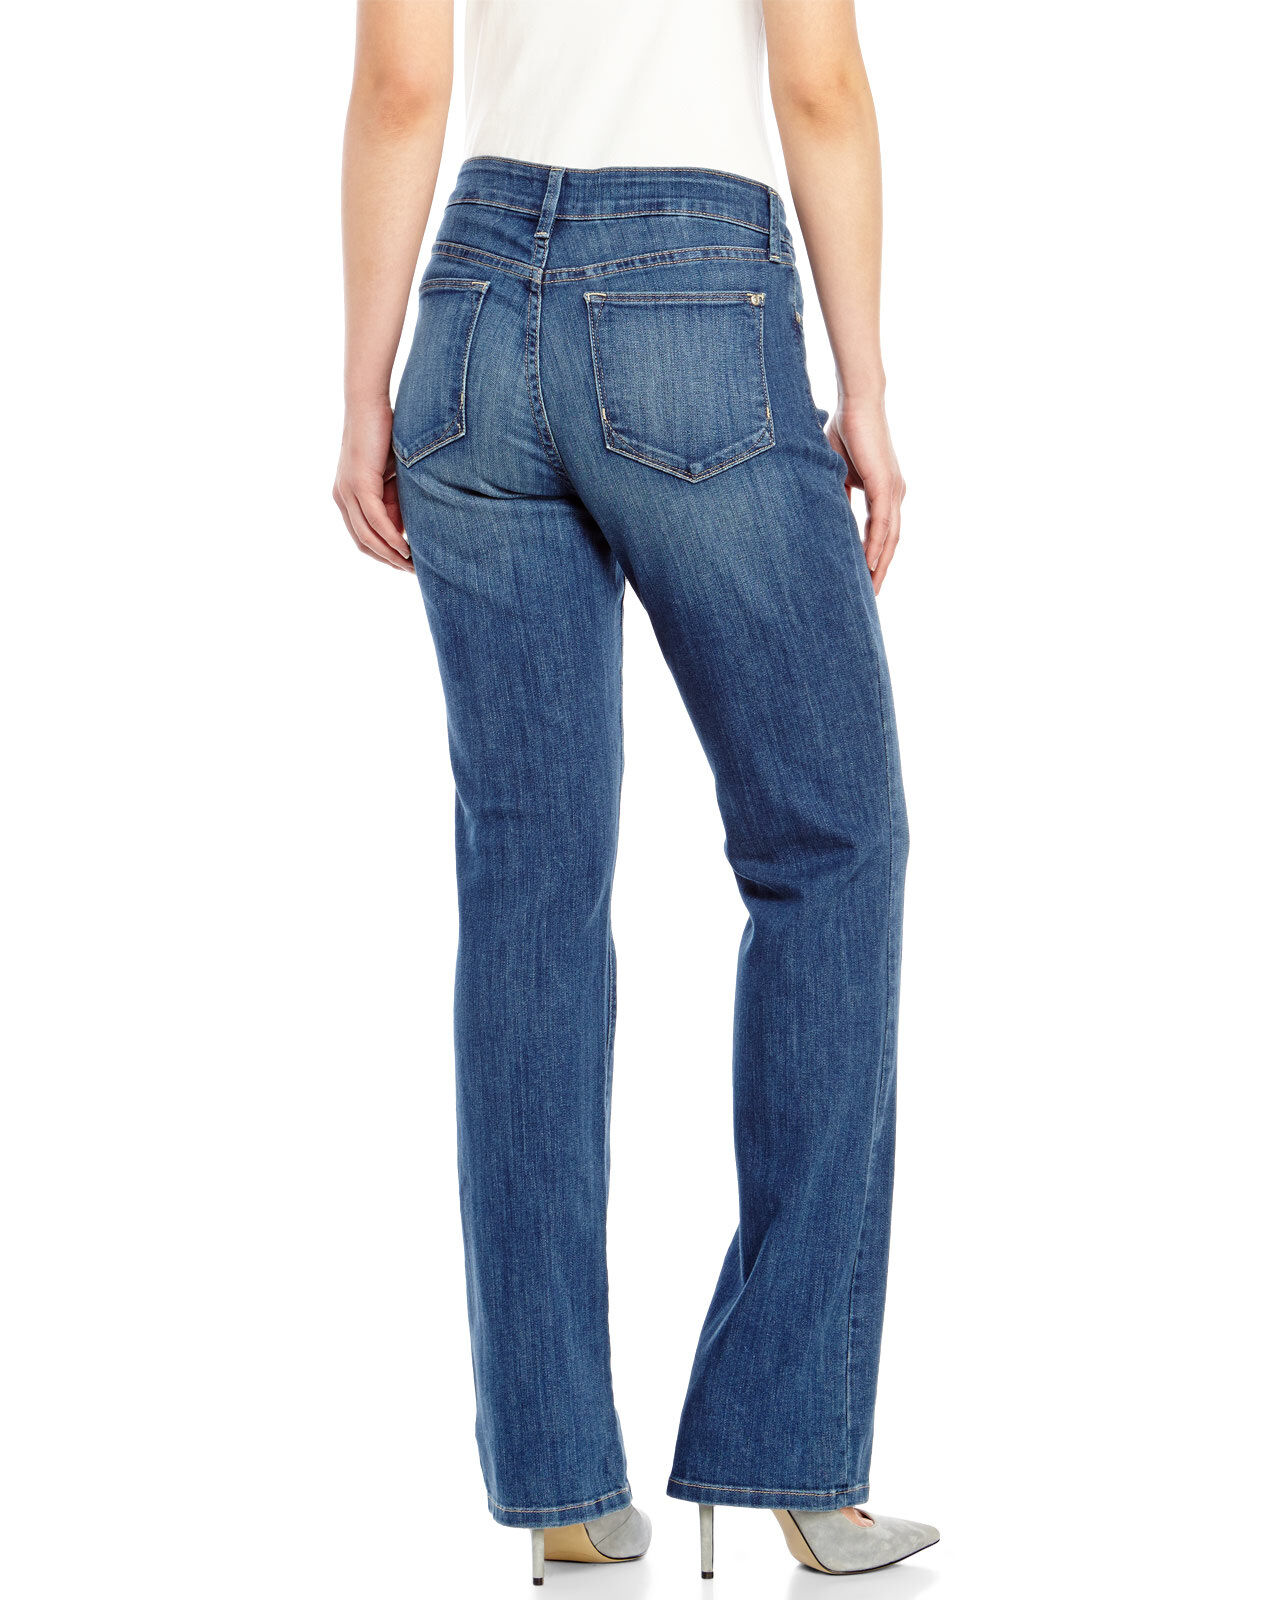 New NYDJ Not Your Daughter Jeans pant Billie mini bootcut Monrovia bluee sz 6P